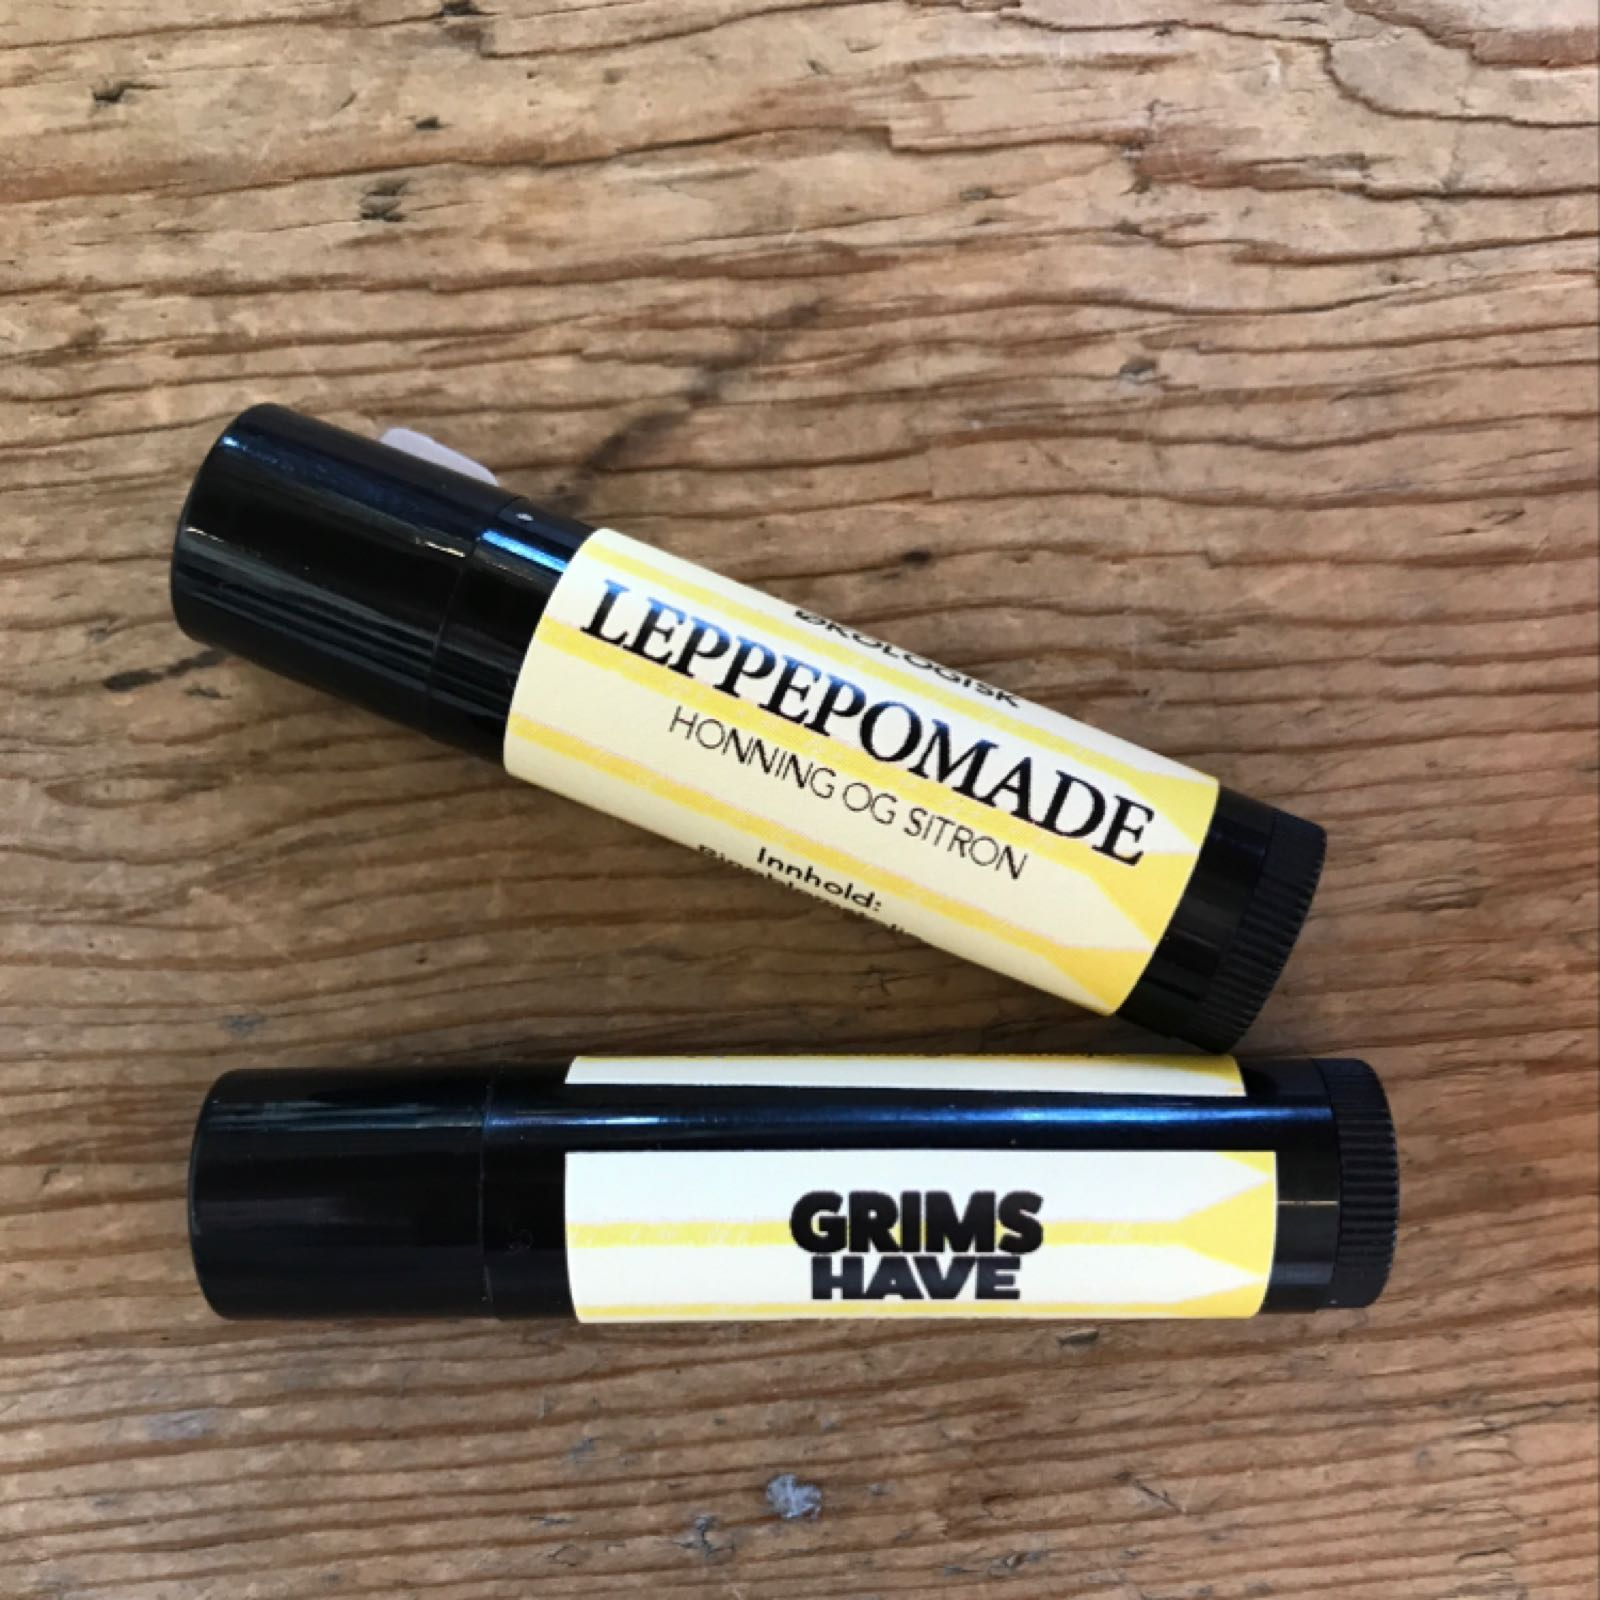 Leppepomade : stift